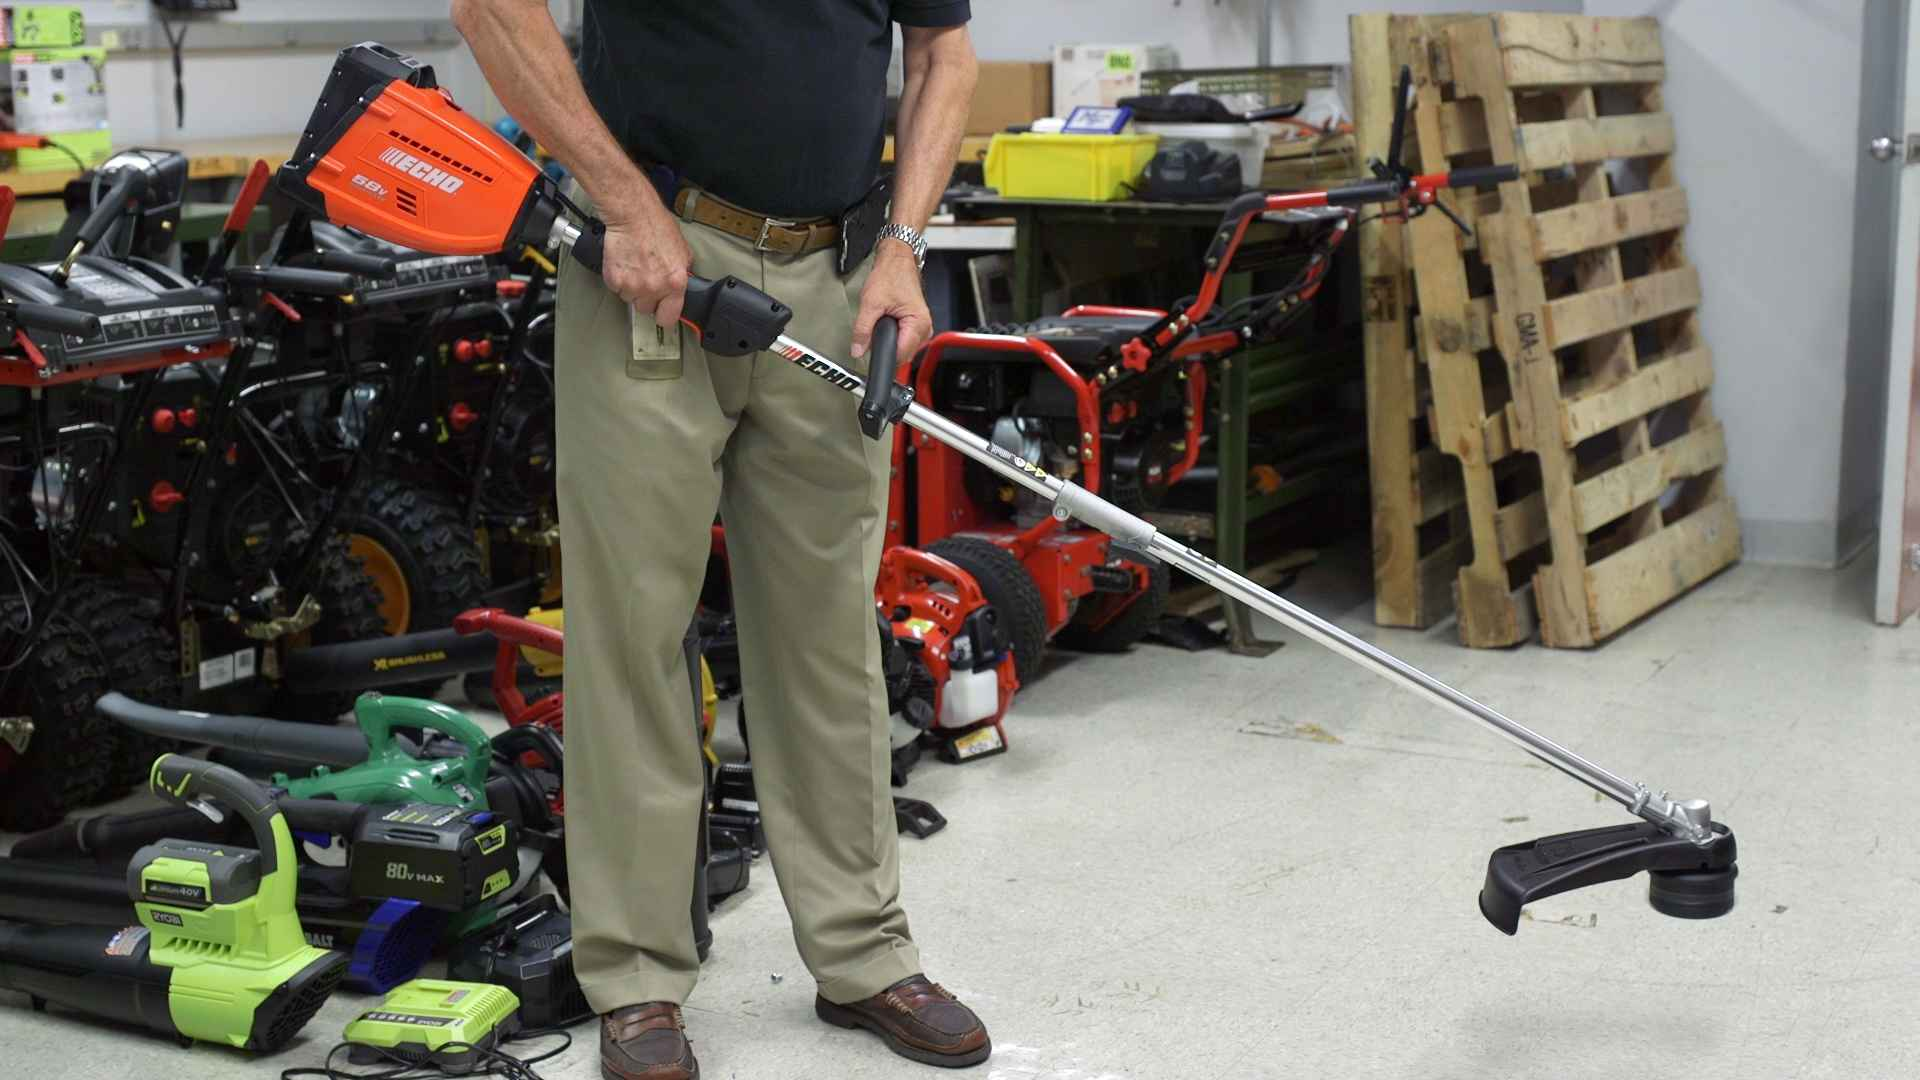 Echo Cordless Trimmer Can Be Tricky To Start